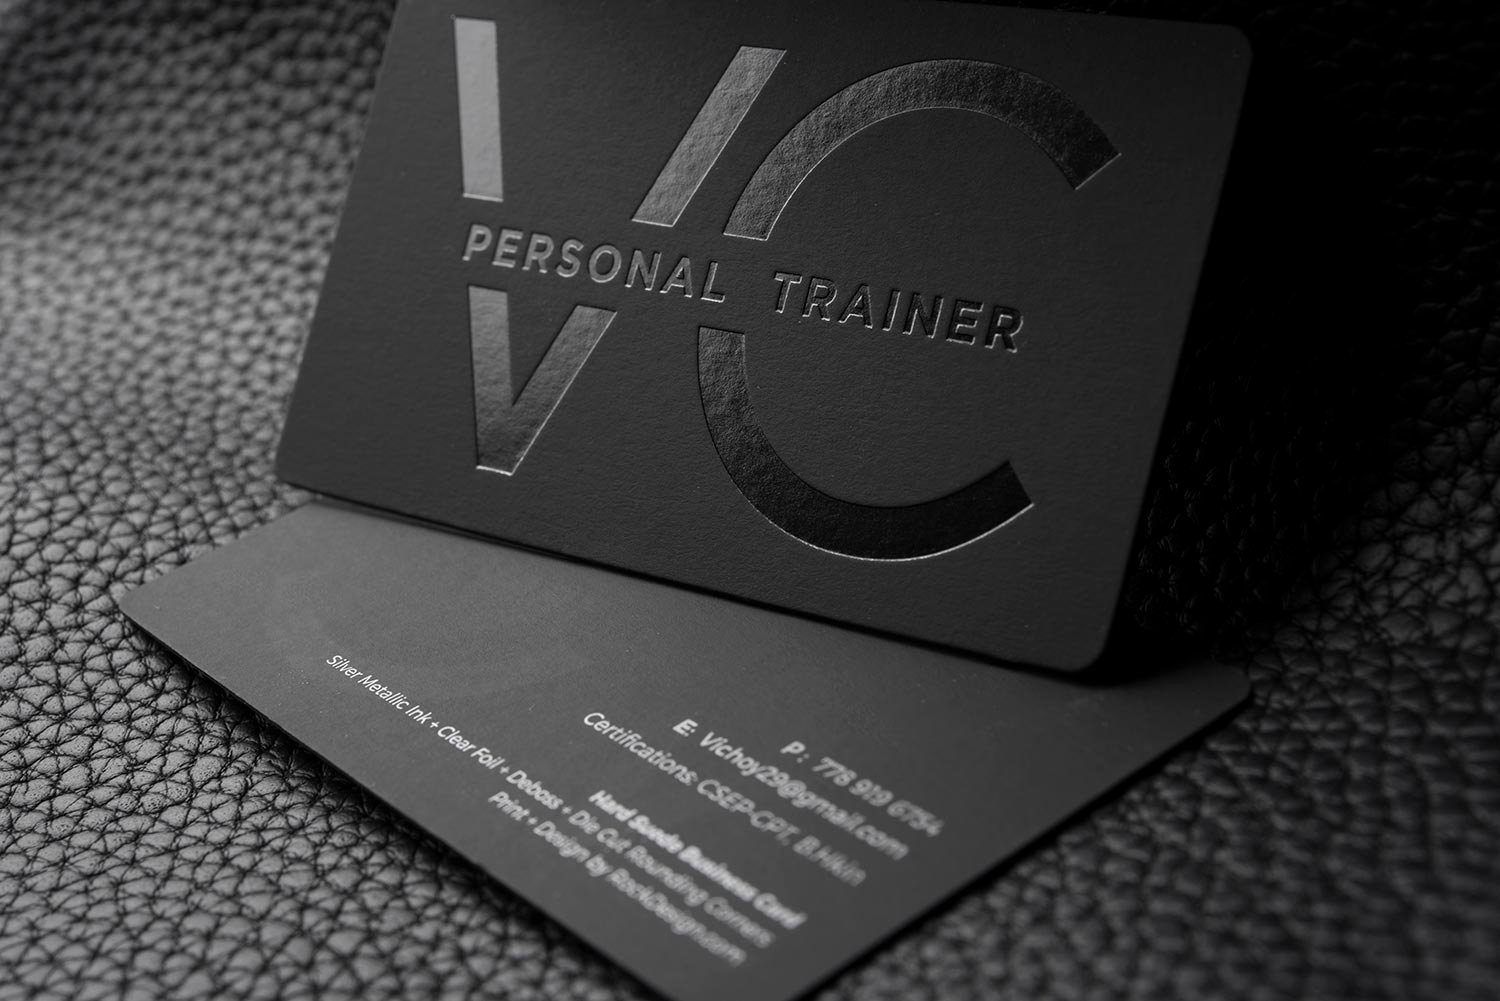 Personal Training Business Cards Inspirational Free Impressive Hard Suede Personal Trainer Business Card Template Vc